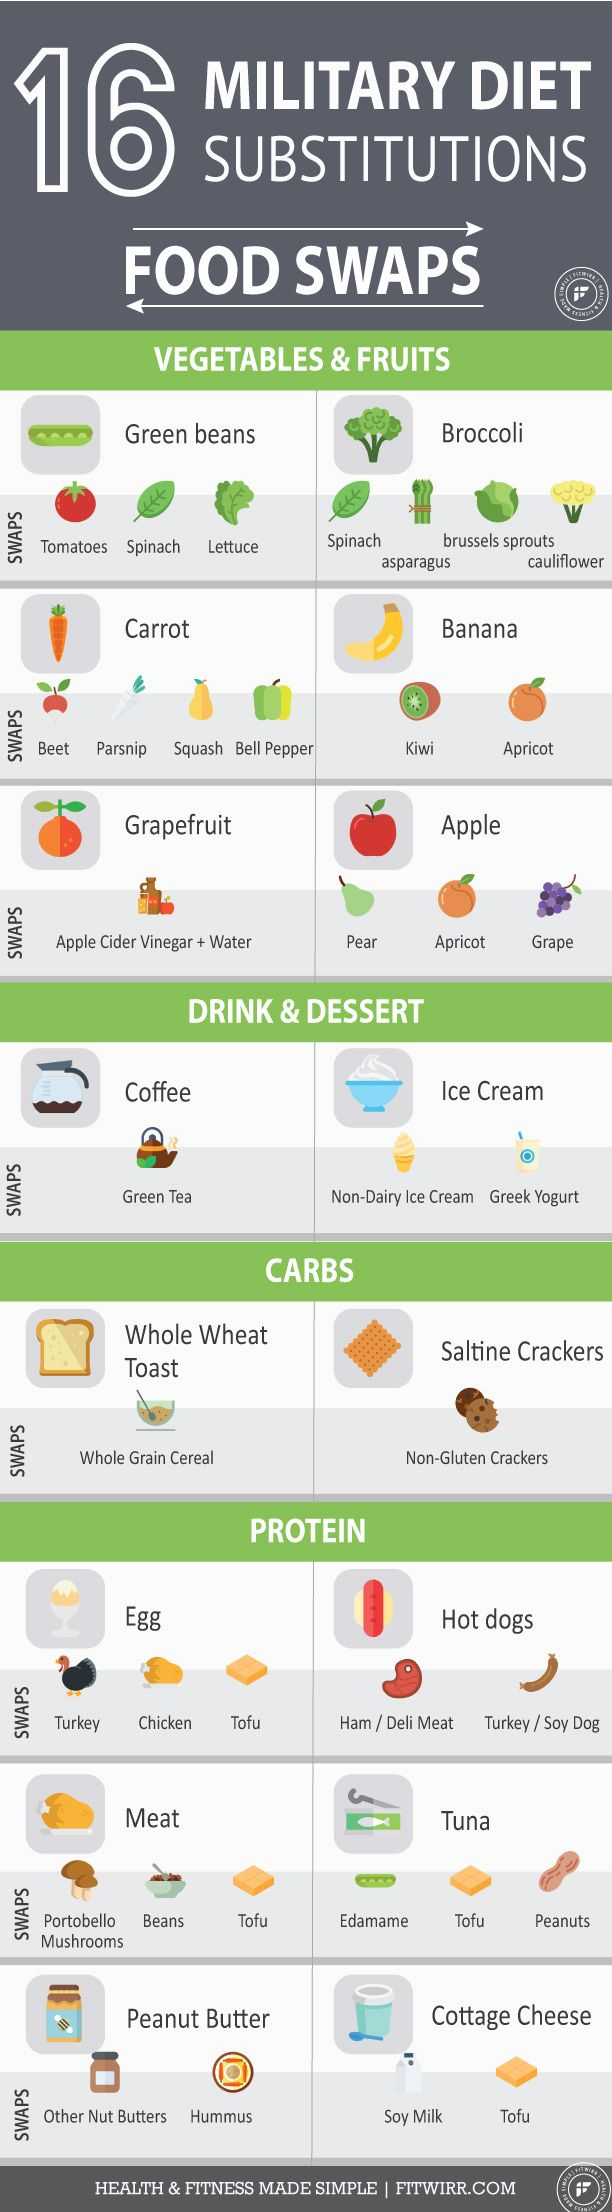 3 Day Military Diet Substitutions Free Download Fitwirr Military Diet Substitutions Military Diet Diet